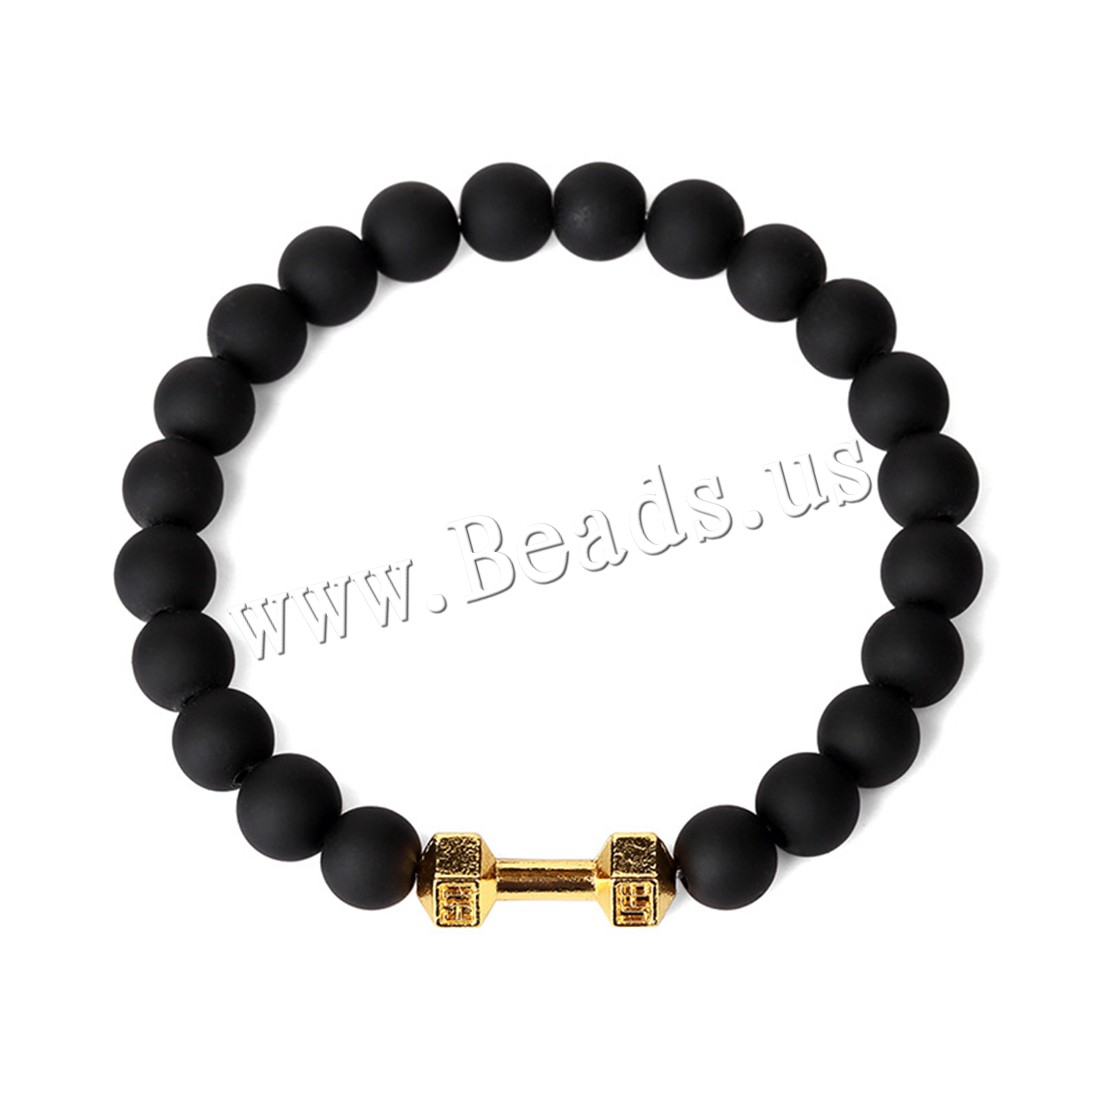 Buy Unisex Bracelet Rubber Zinc Alloy gold color plated beaded bracelet 20x8mm 8mm Sold Per Approx 7.8 Inch Strand